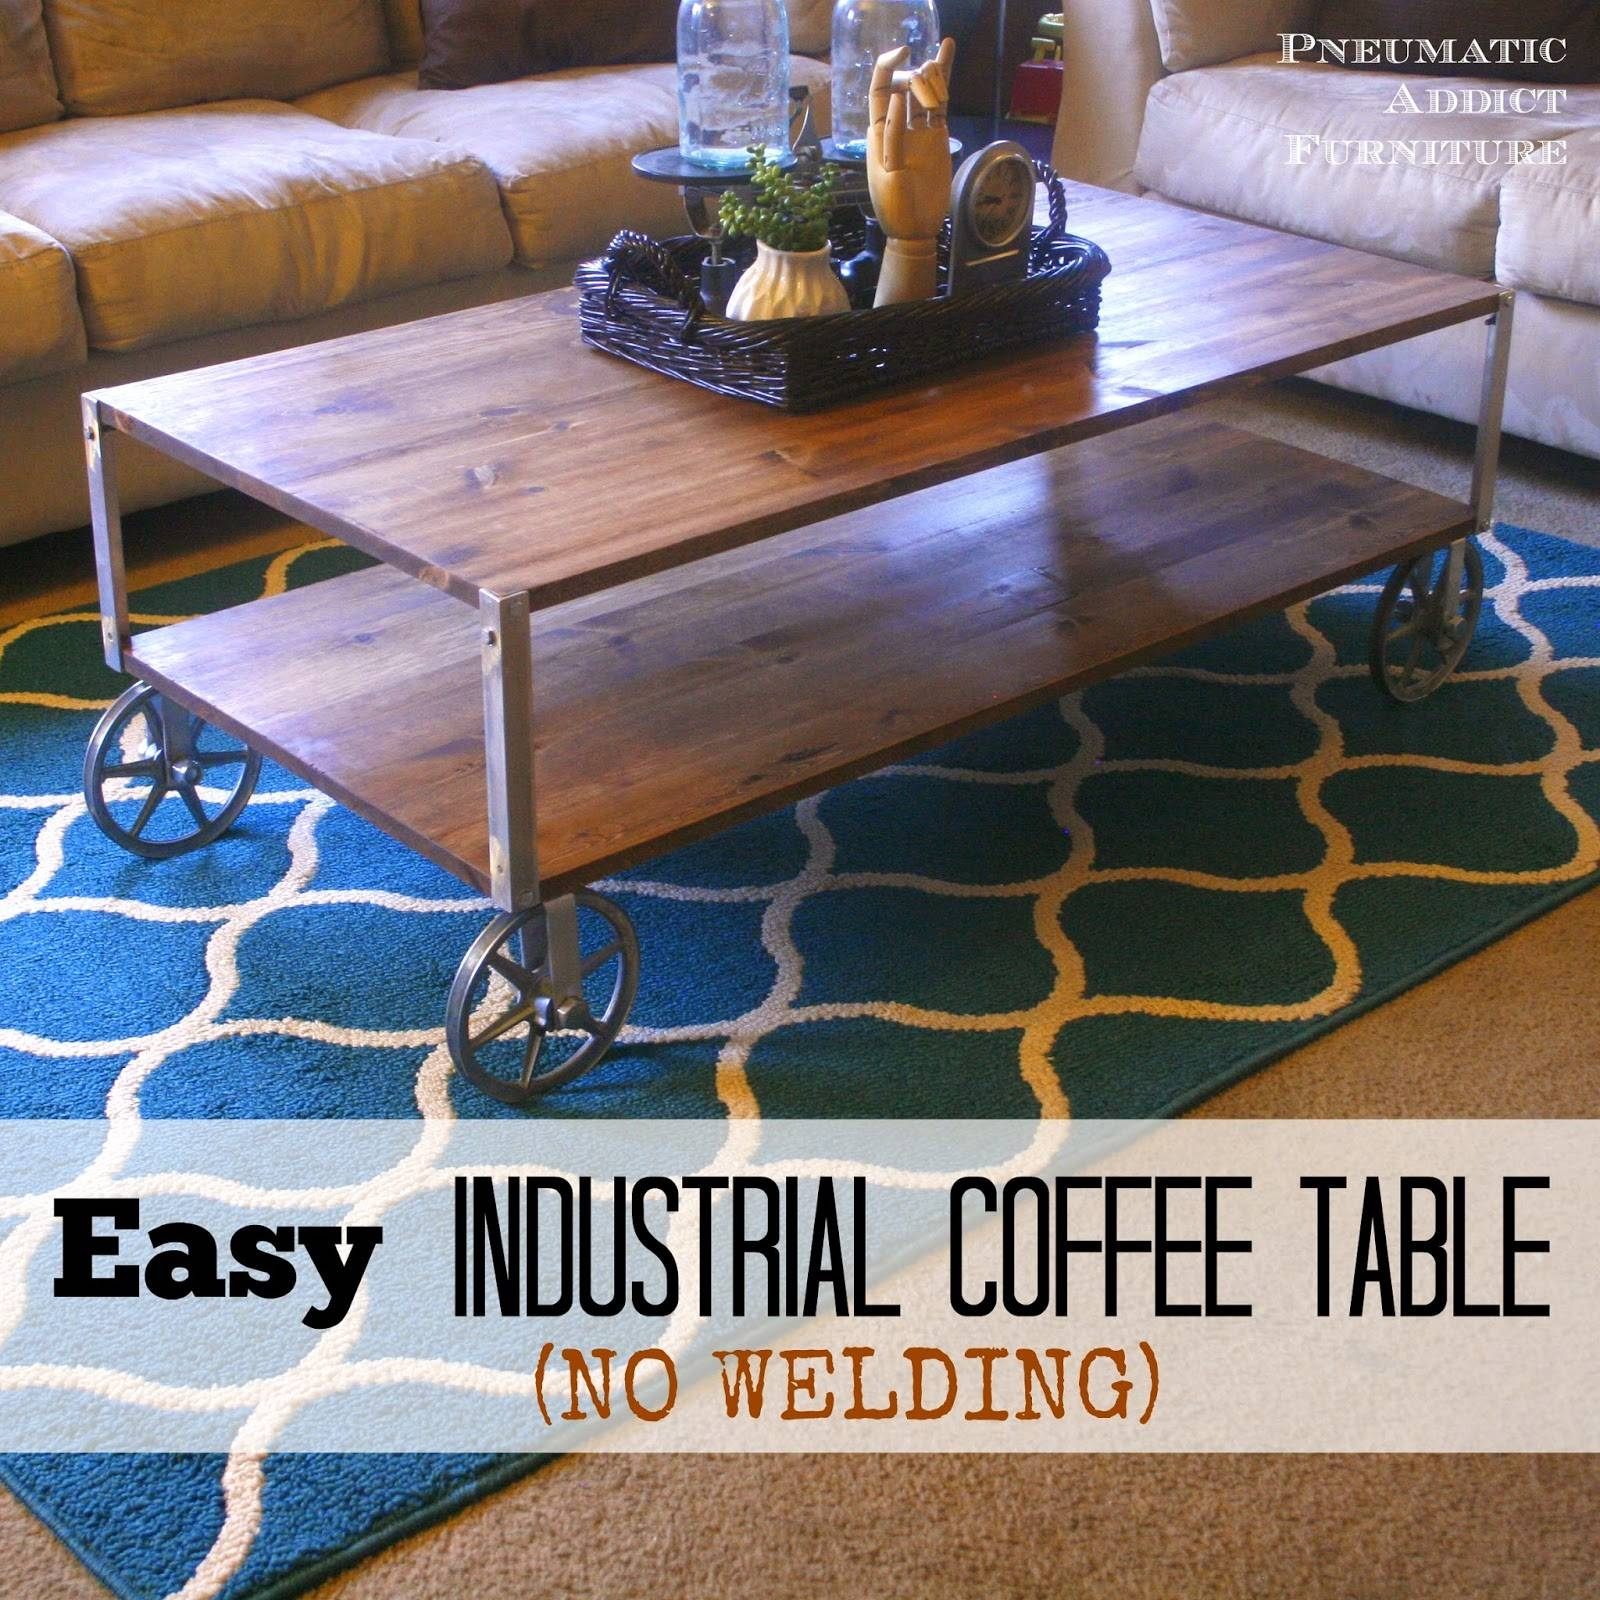 Pneumatic Addict : Easy Industrial Coffee Table (No Welding!) within Aiden Coffee Tables (Image 25 of 30)